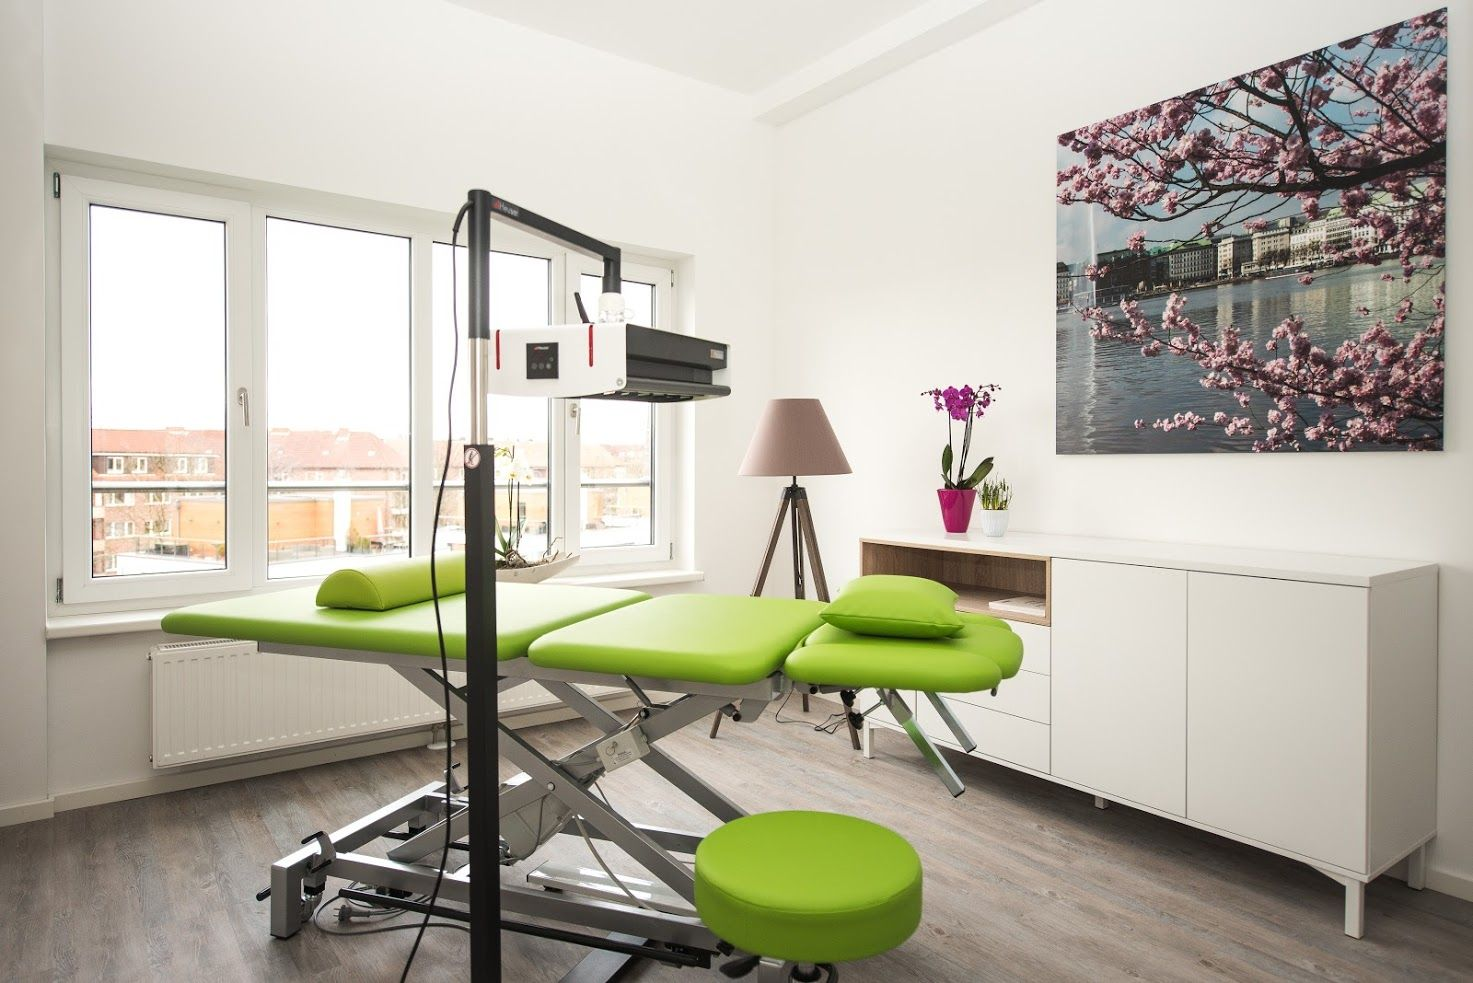 Behandlungzimmer My Physio Physiotherapie Hamburg Barmbek